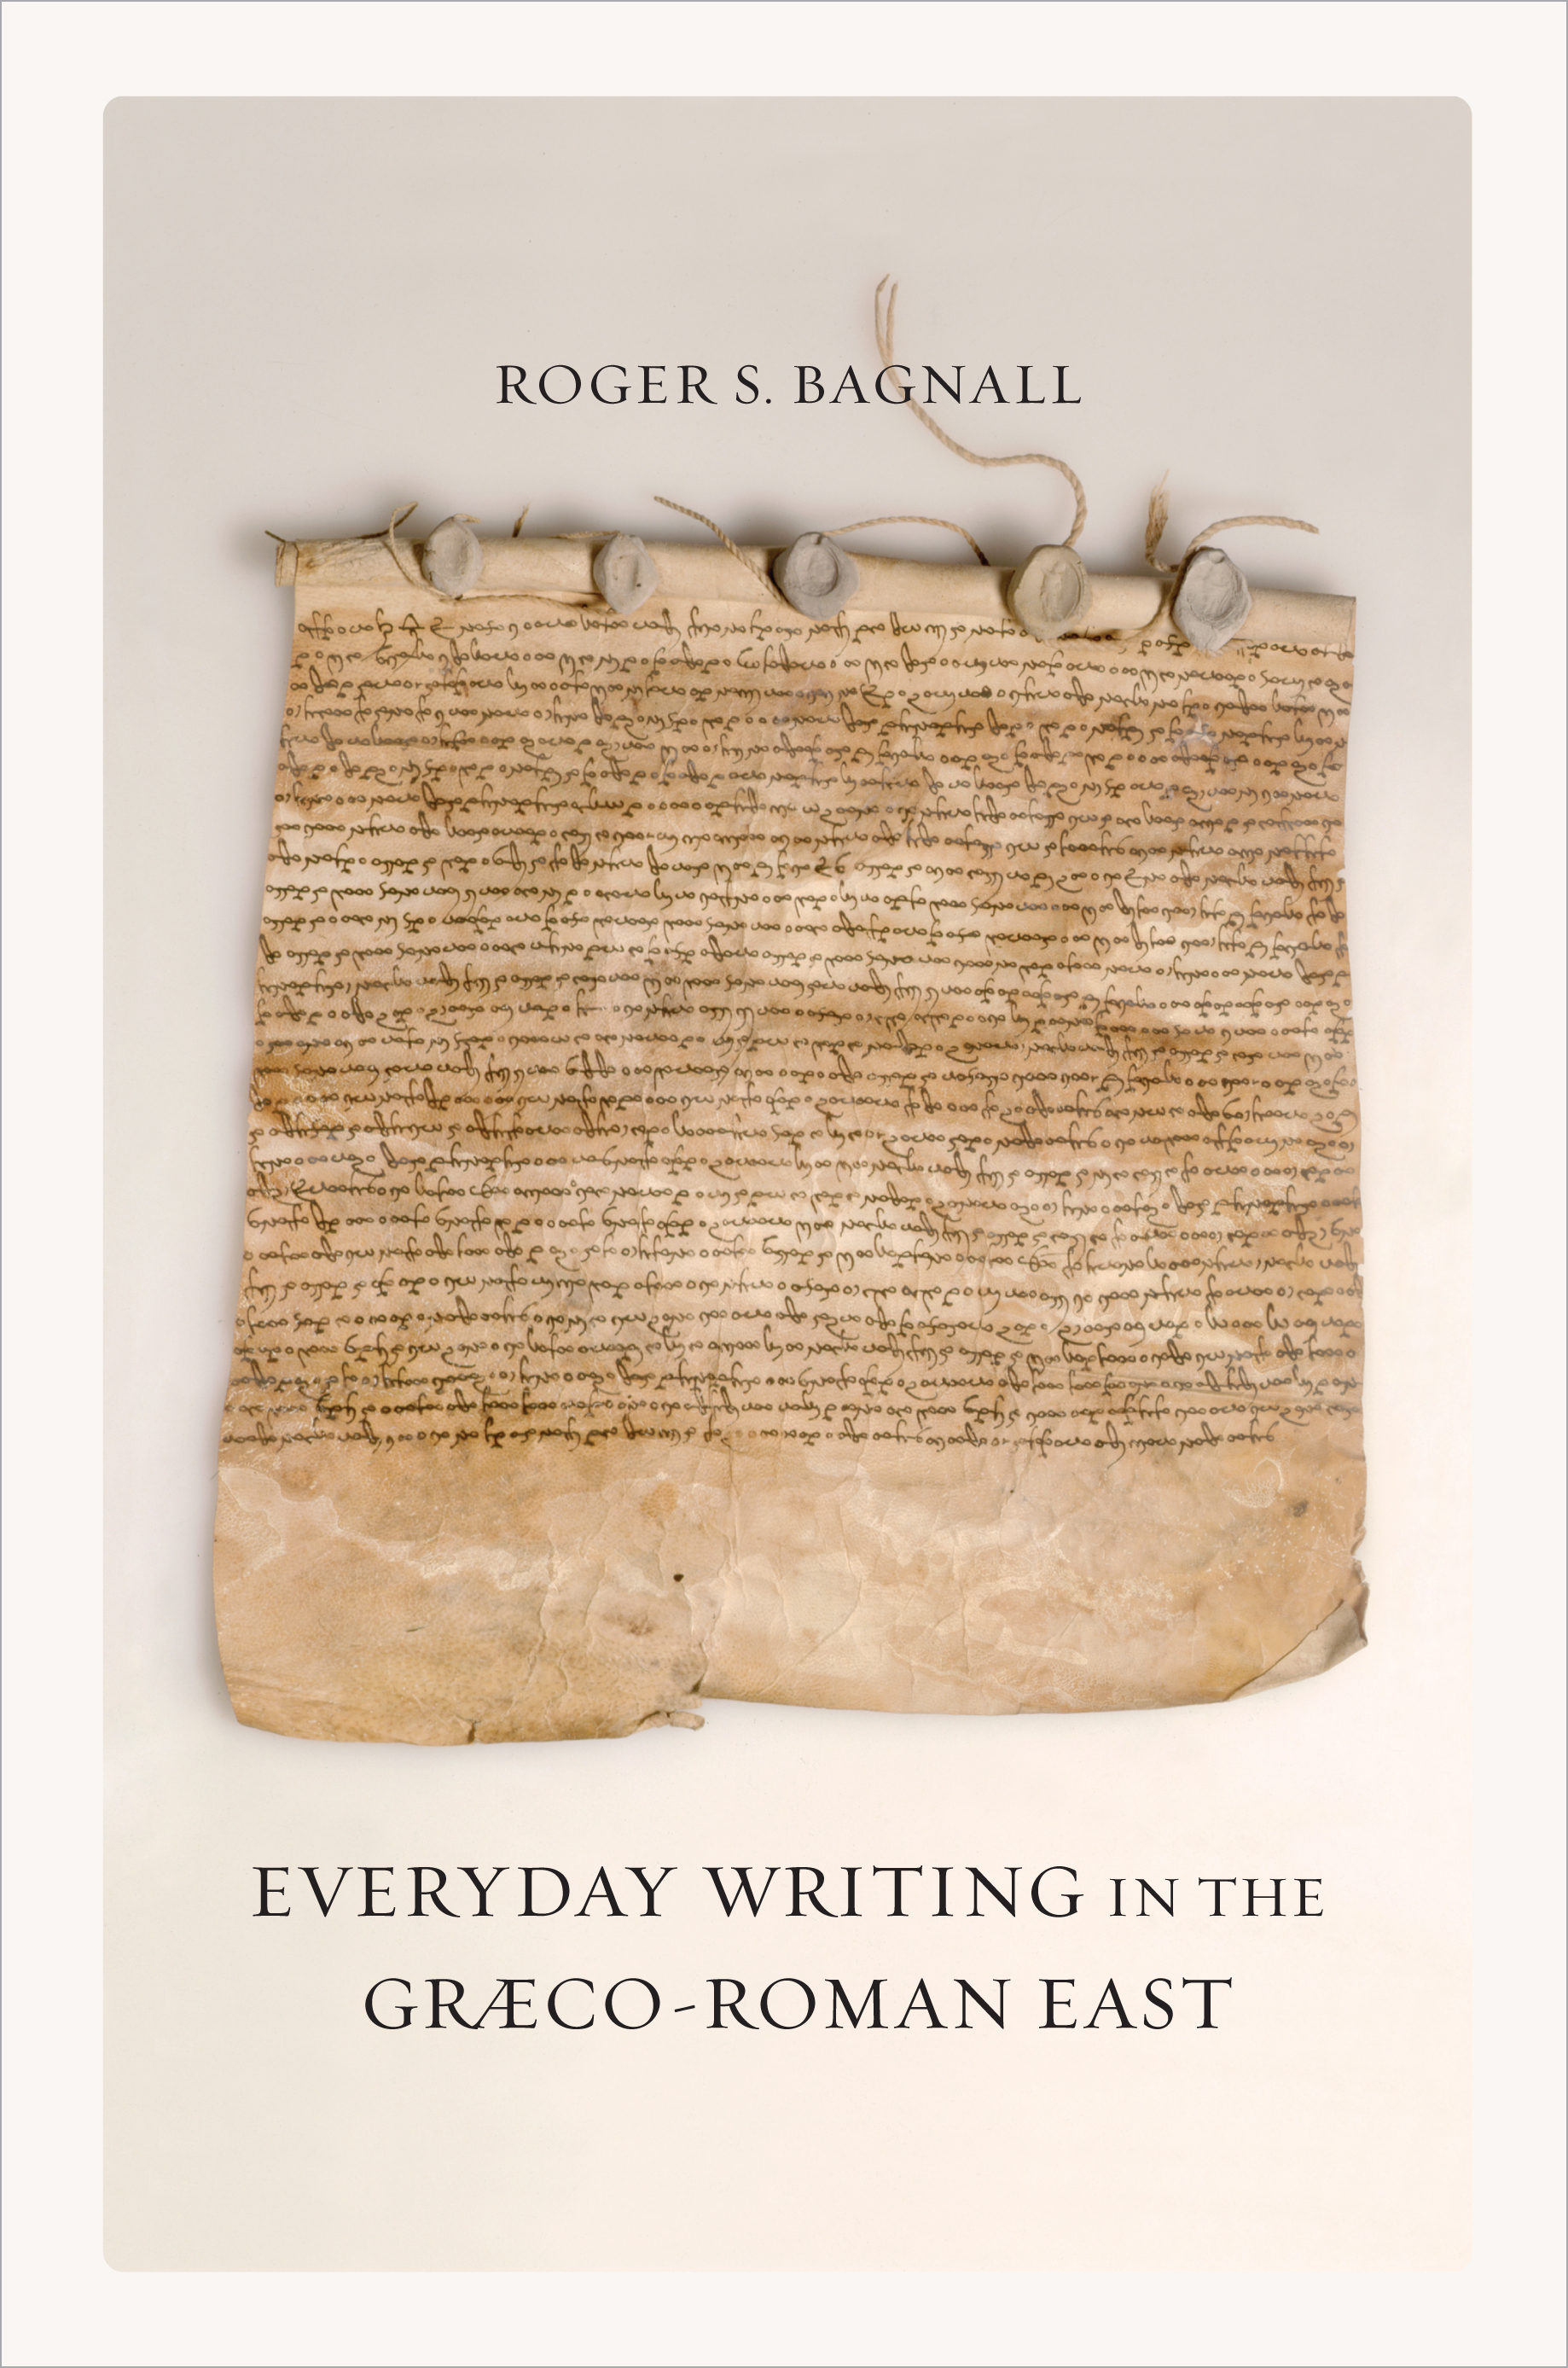 Everyday Writing in the Græco-Roman East